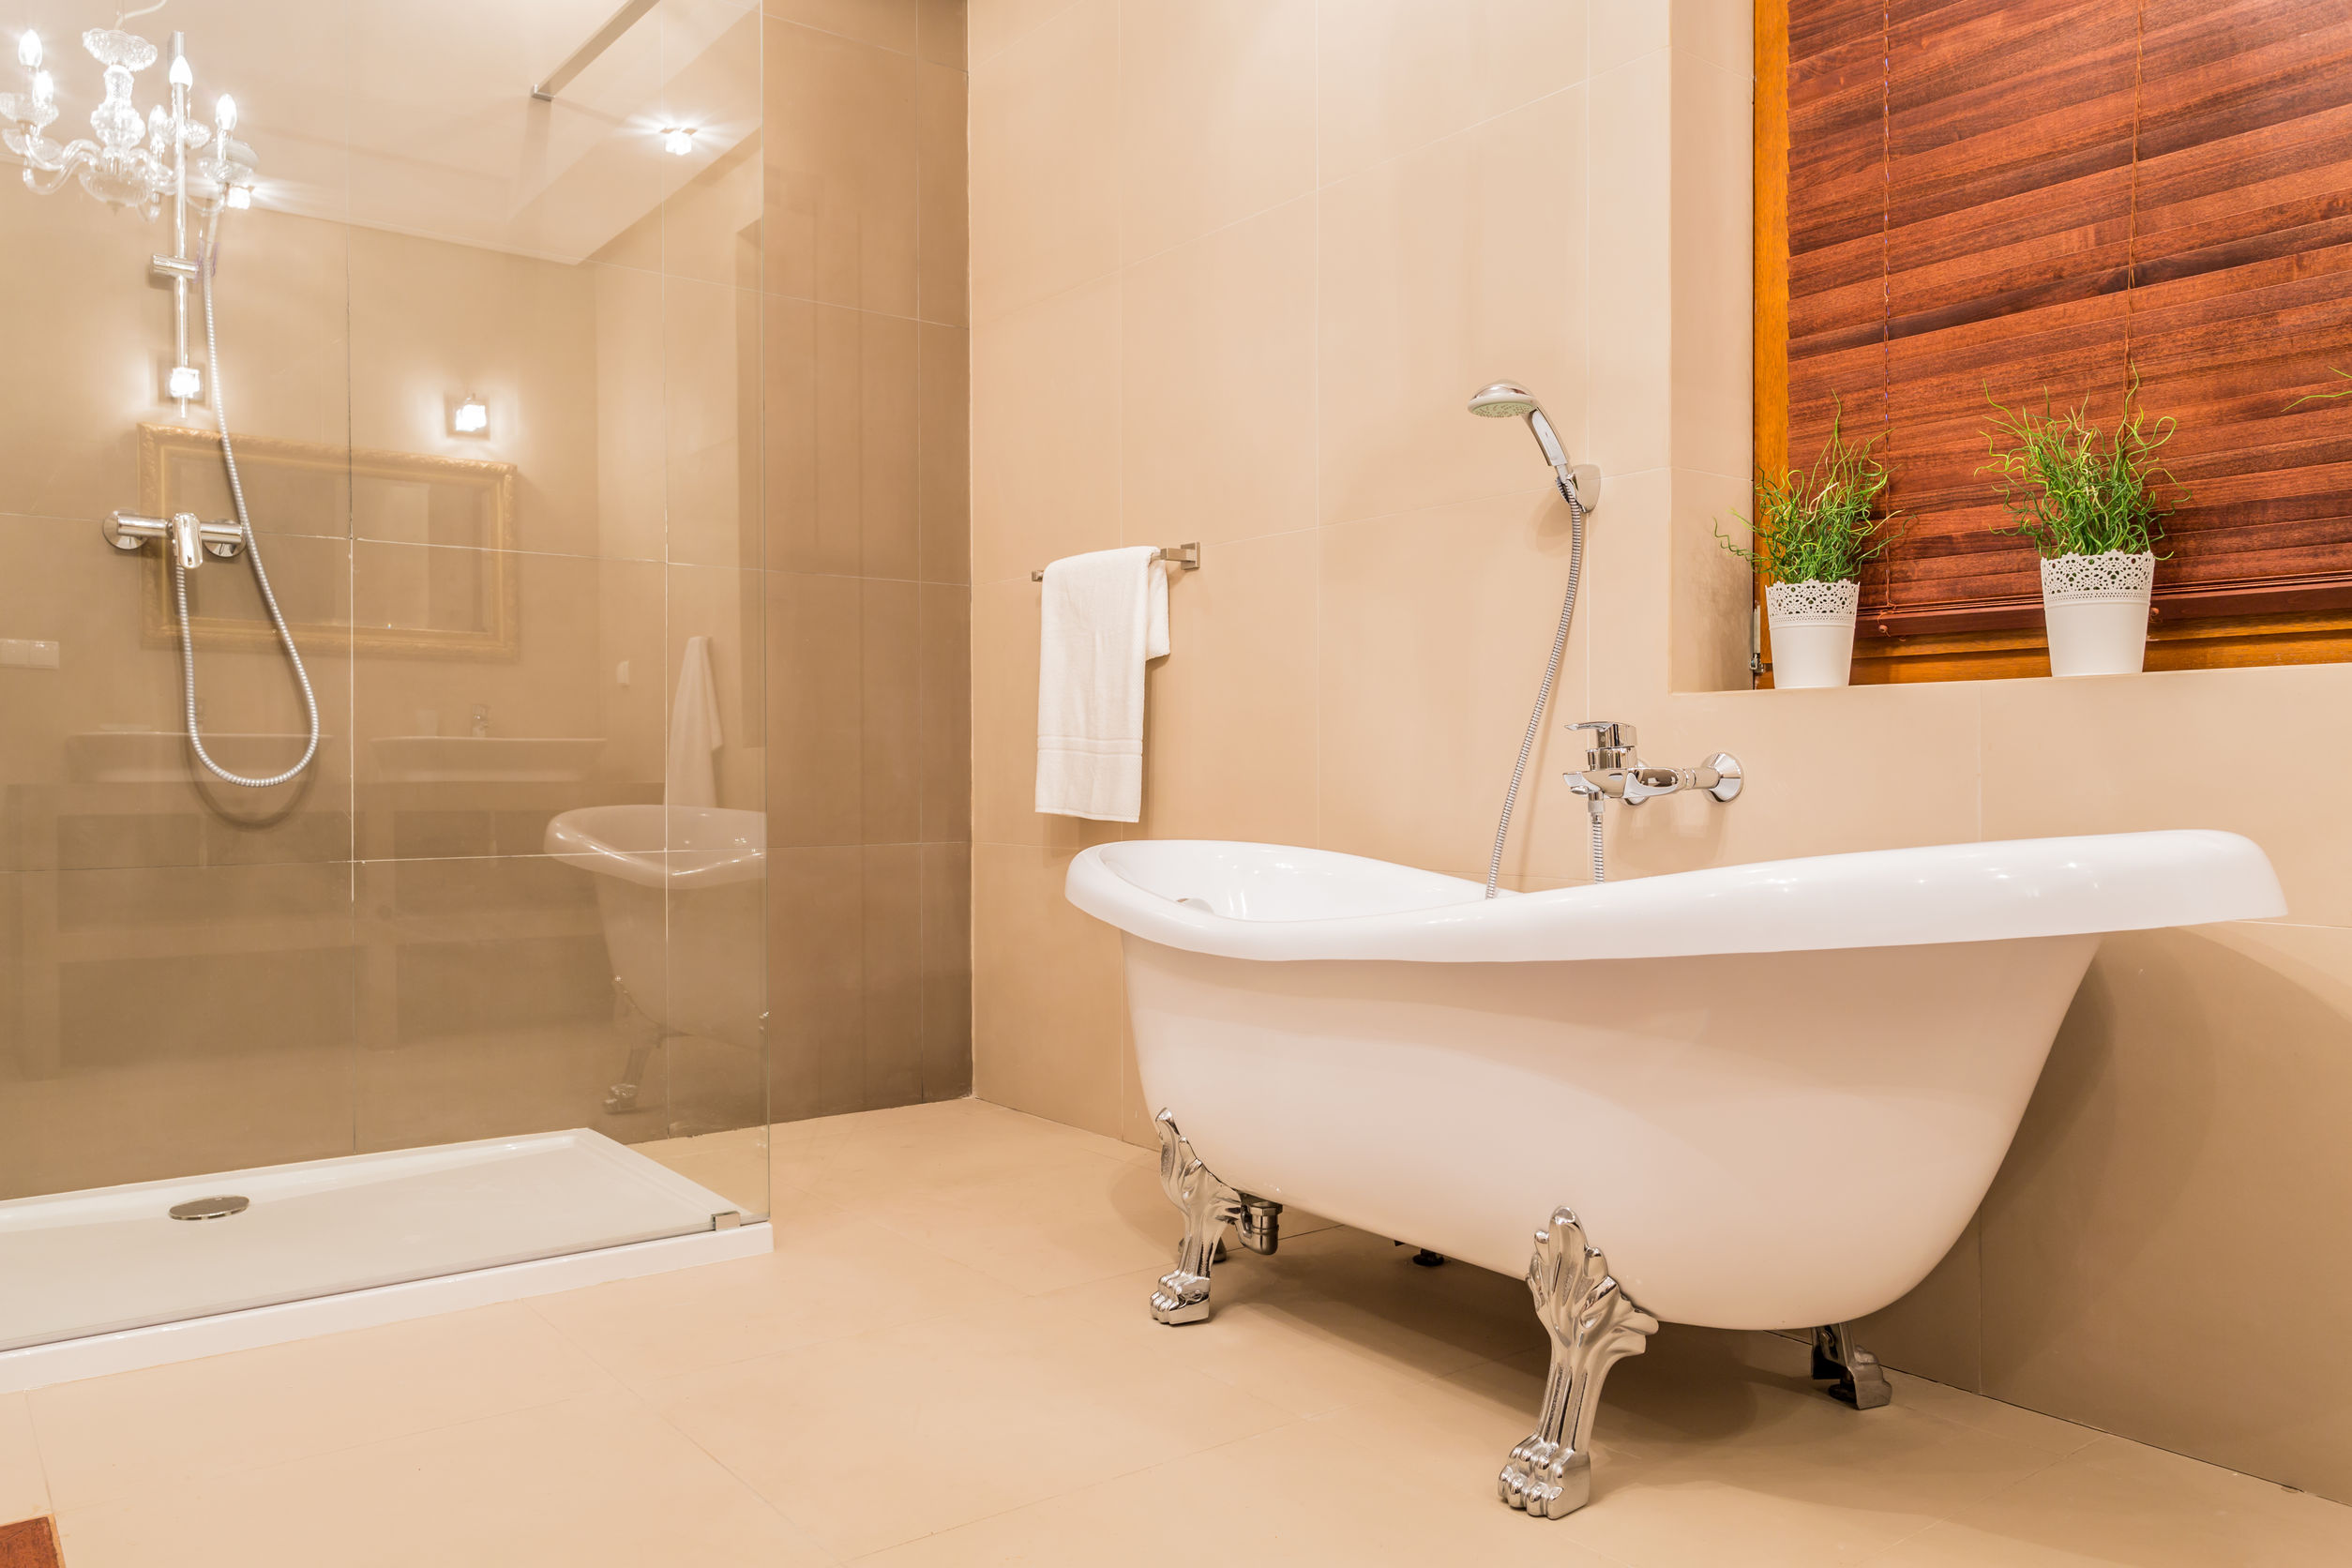 Bathroom Remodeling Contractors San Jose CA EOL Builders - Bathroom remodeling san jose ca